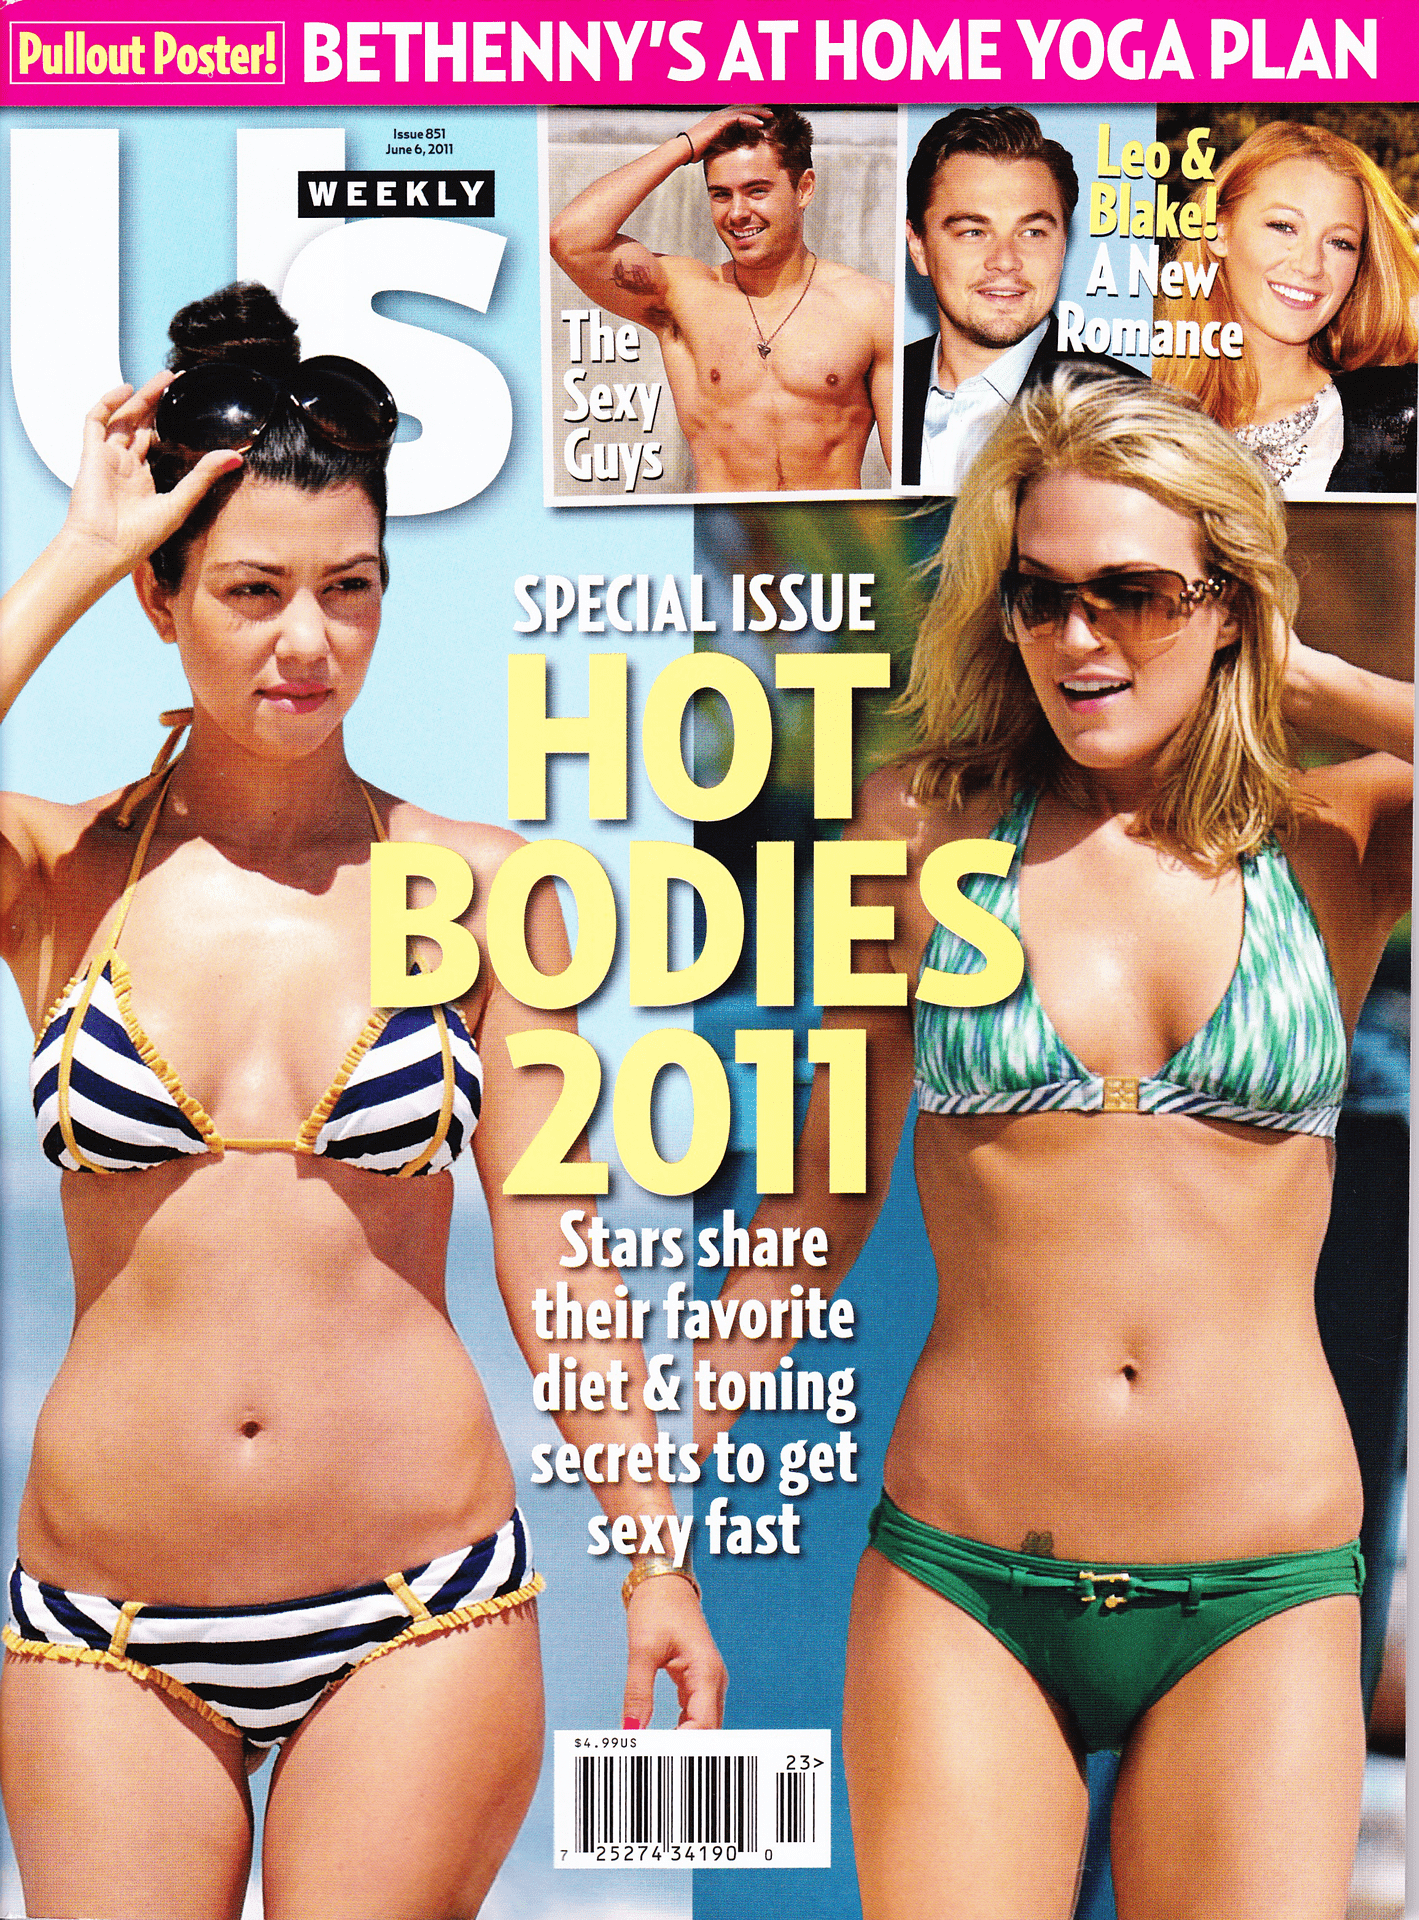 US Weekly cover 6 June 2011 cropped